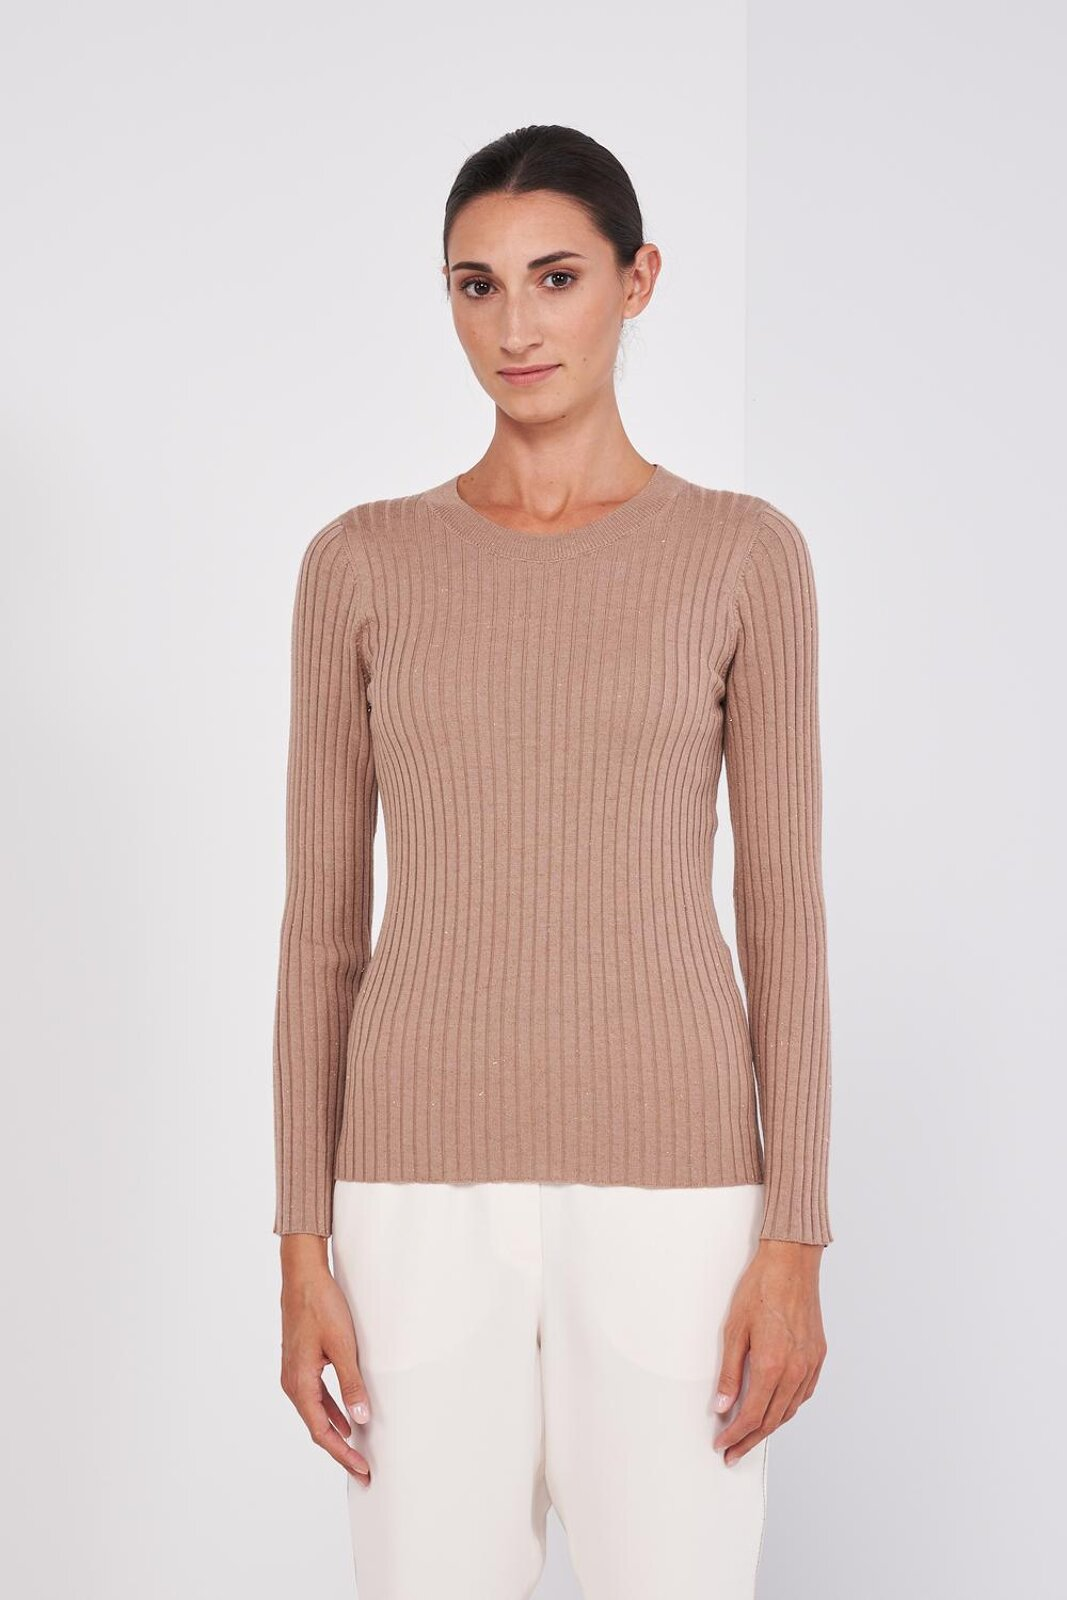 Crewneck Sweater In Virgin Wool And Light Viscose With Lurex Threads In The Weft. Ribbed workmanship, Adherent fit. - Peserico